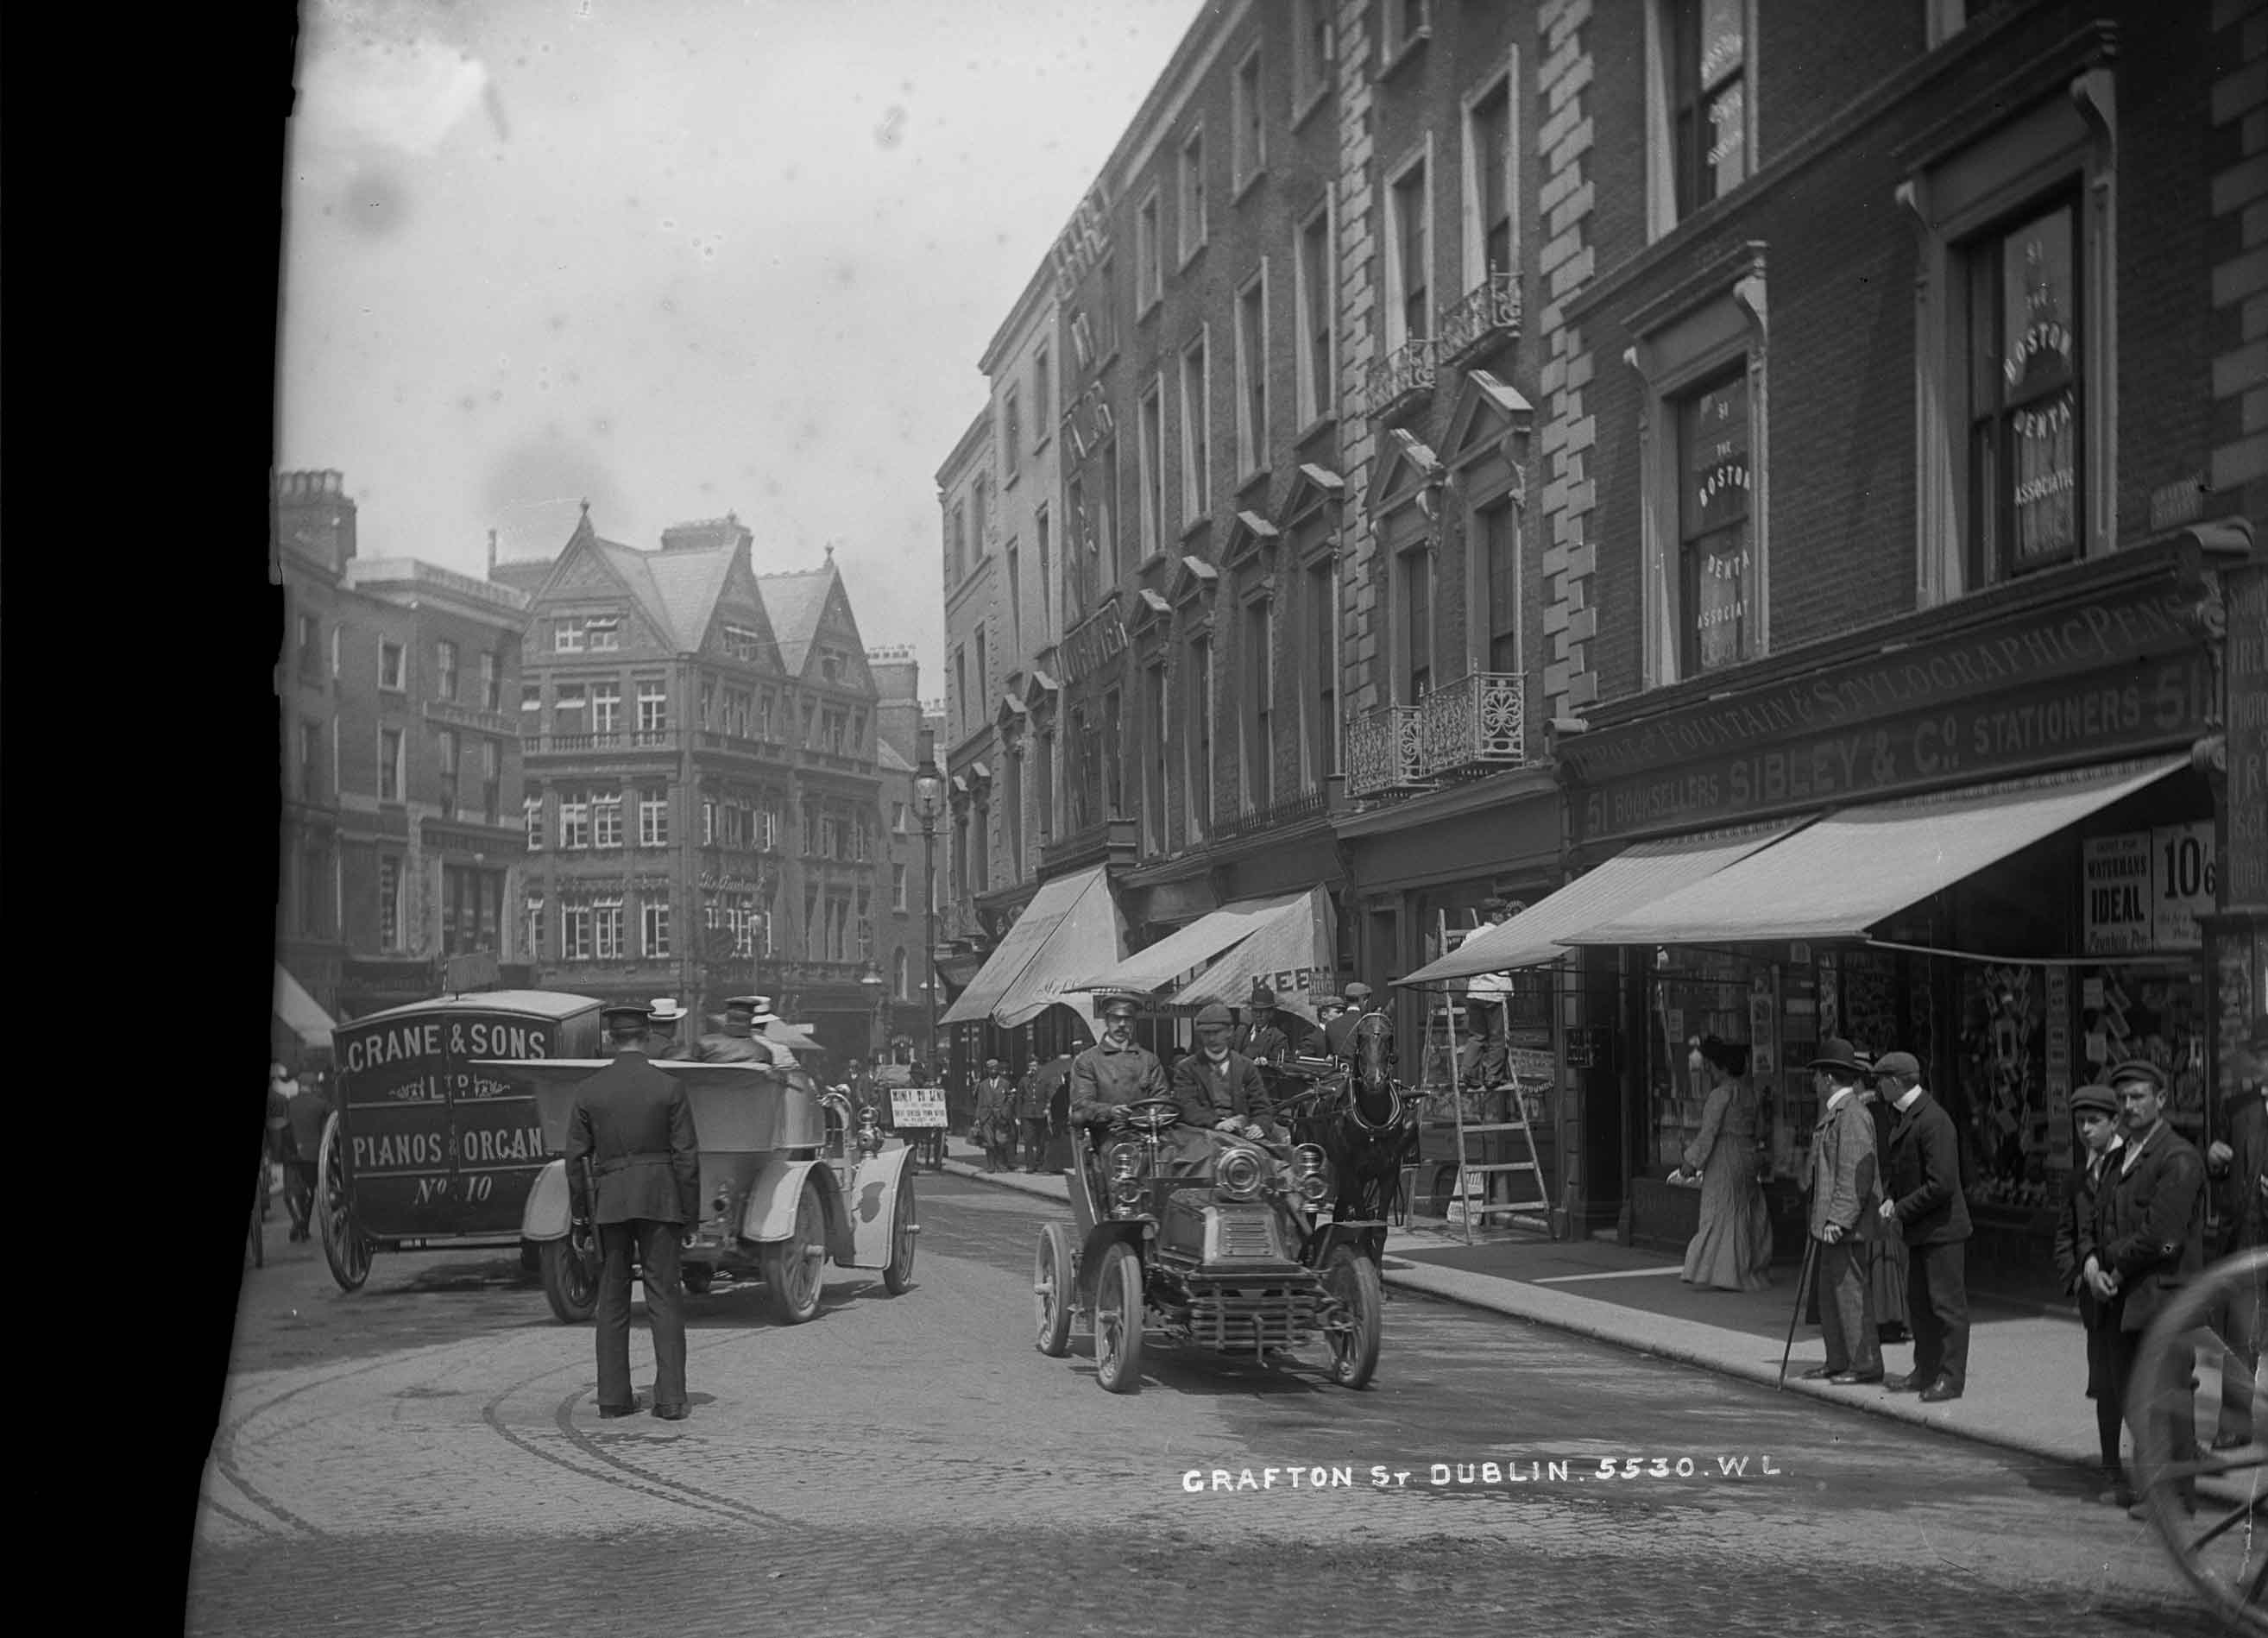 Dublin streets like Grafton St were packed with shoppers in the lead up to Christmas